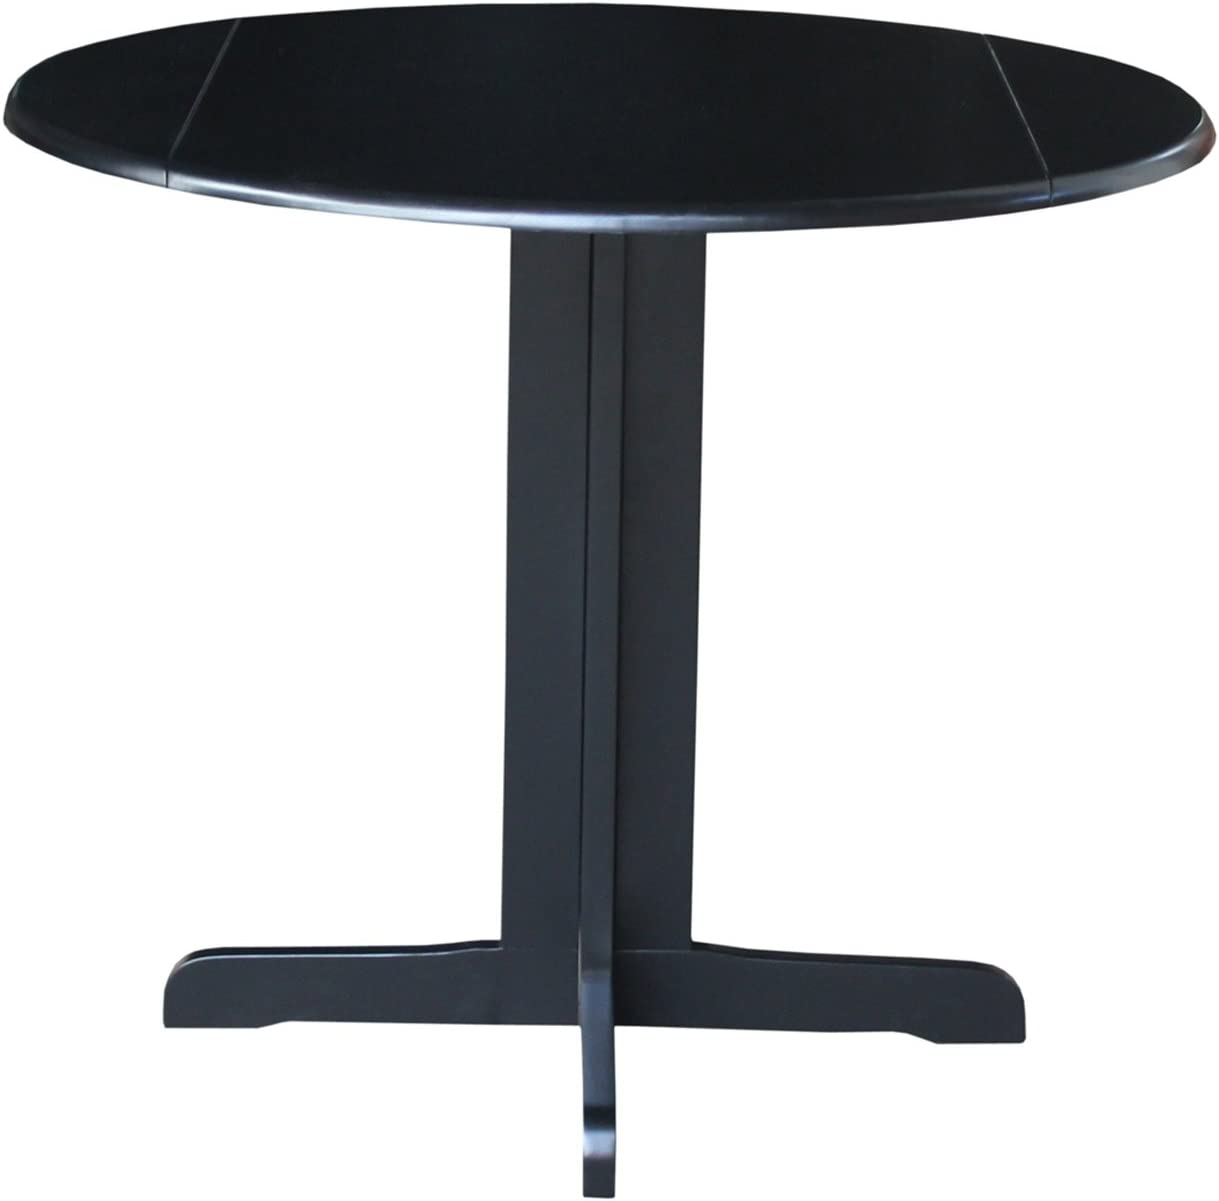 International Concepts Dual Drop Leaf Dining Table, 36-Inch, Black